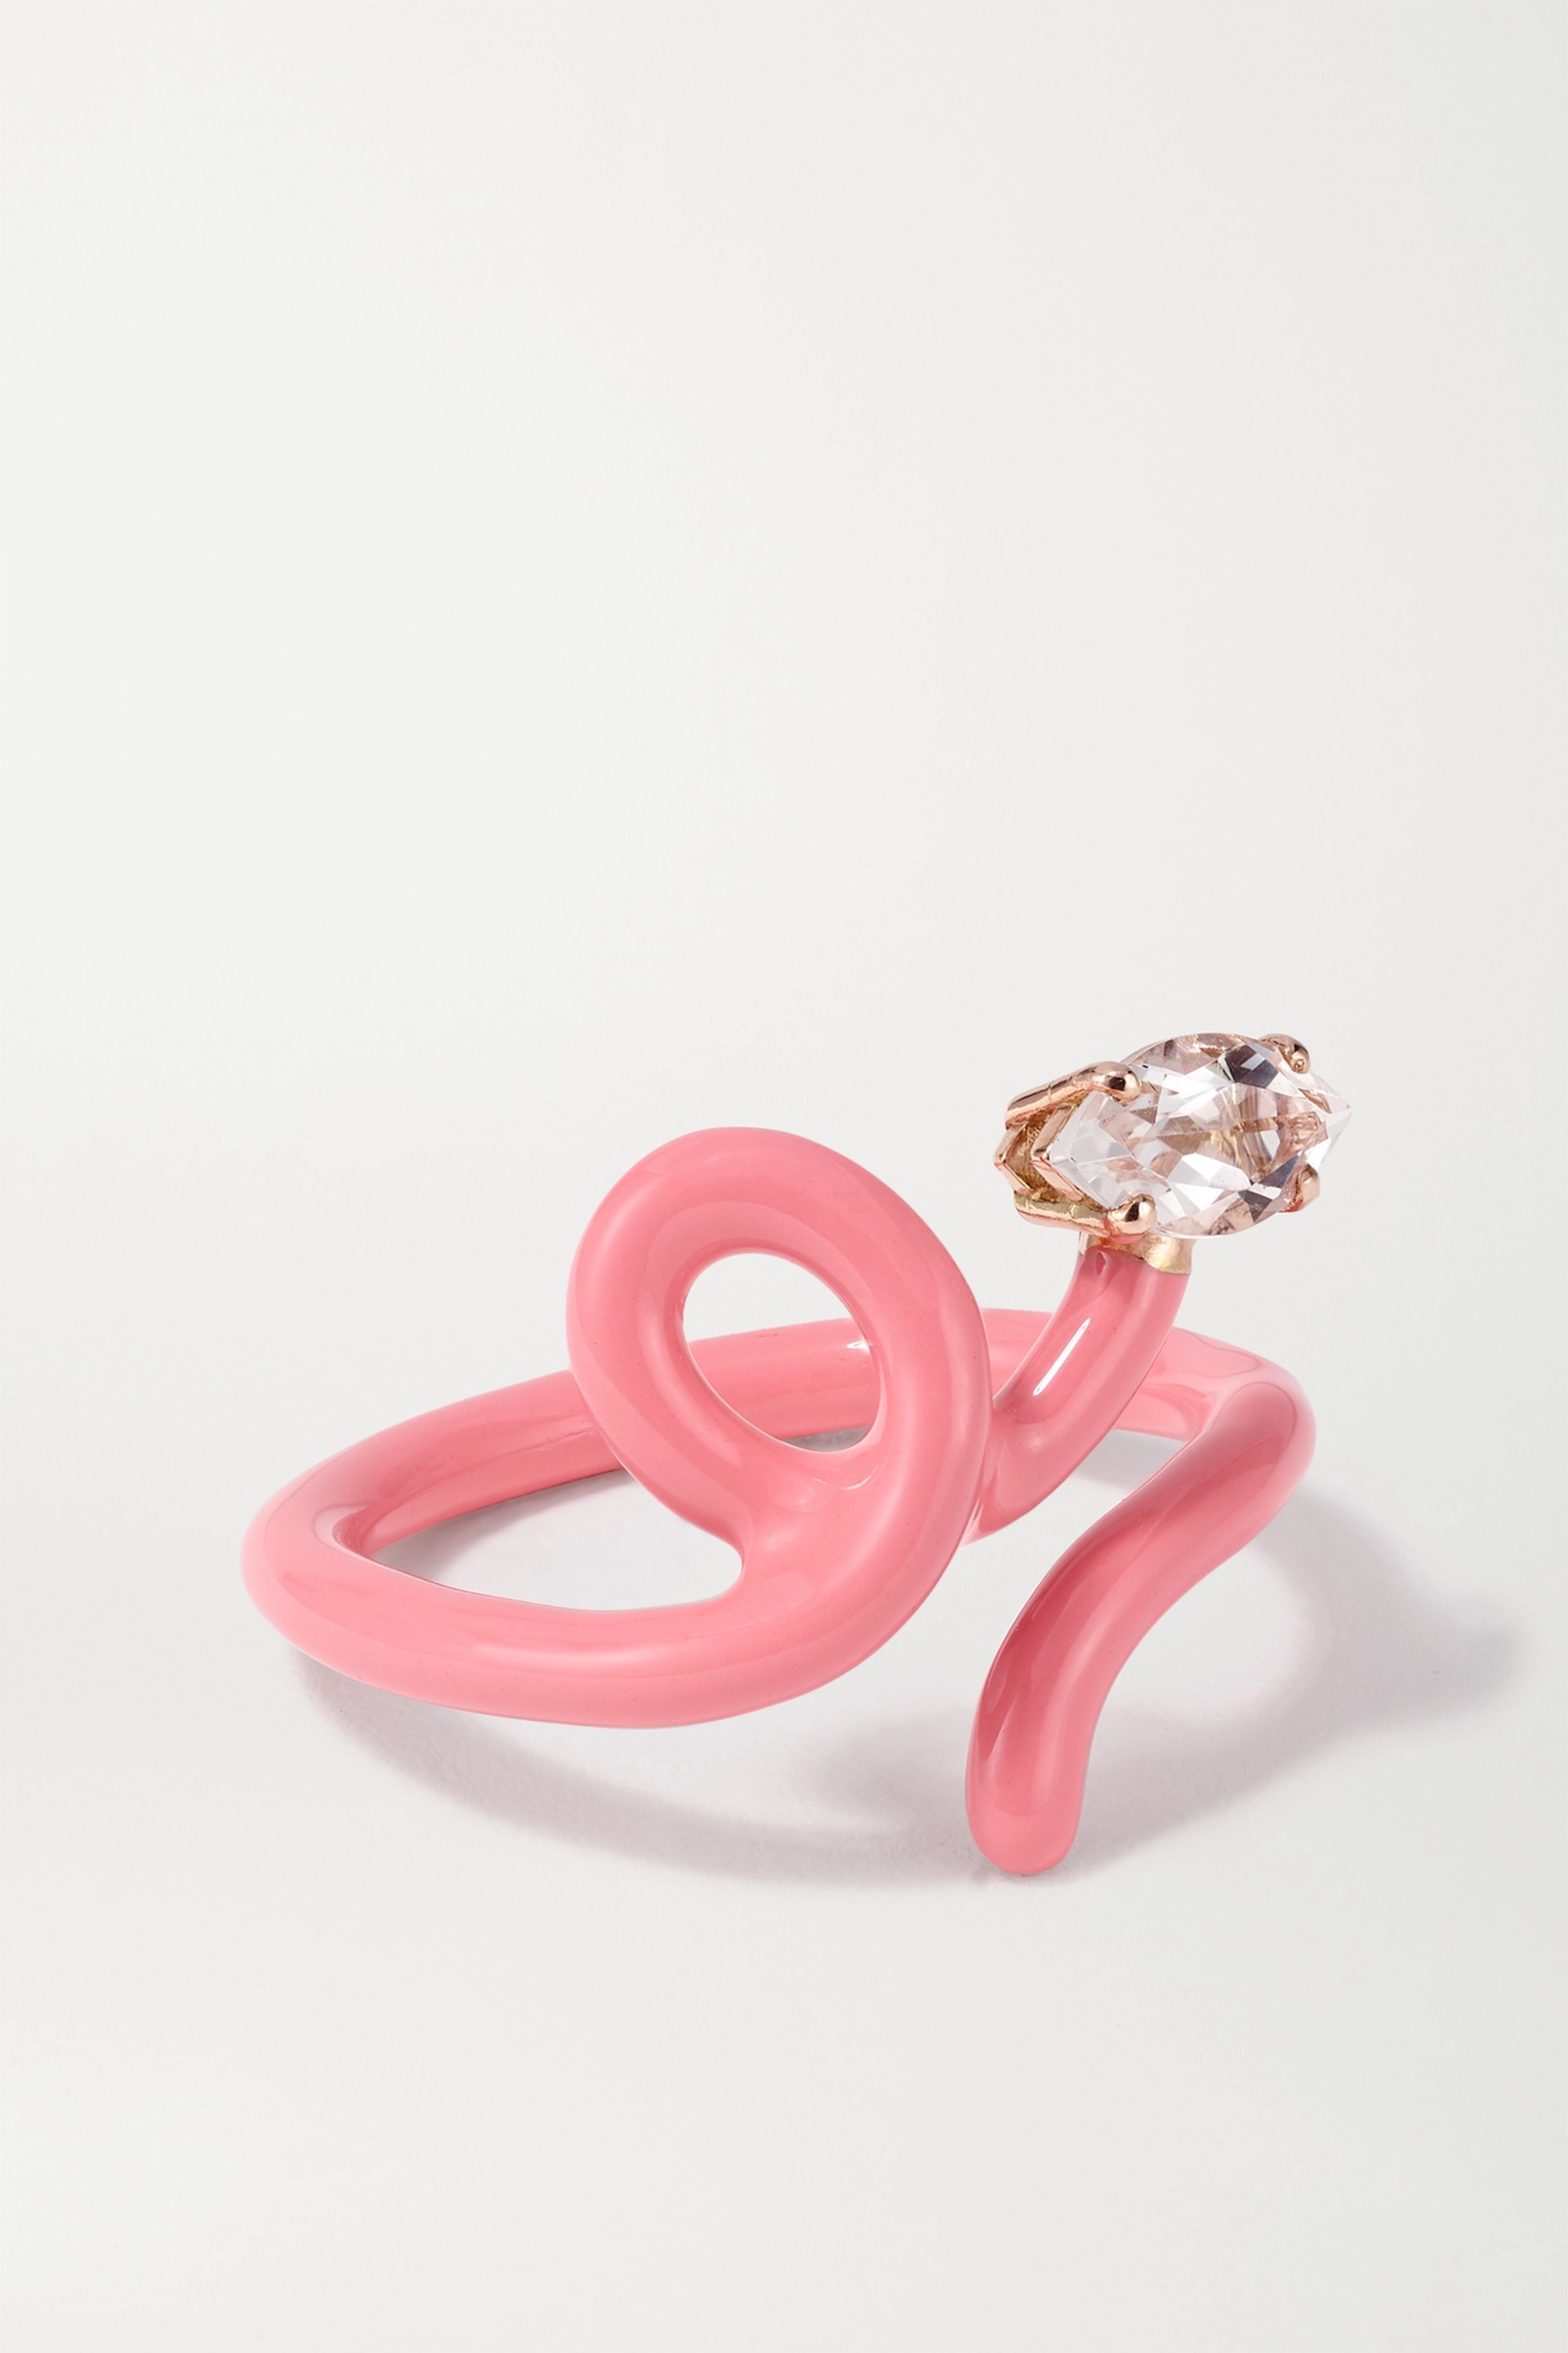 Bea Bongiasca Baby Vine Tendril rose gold, enamel and rock crystal ring